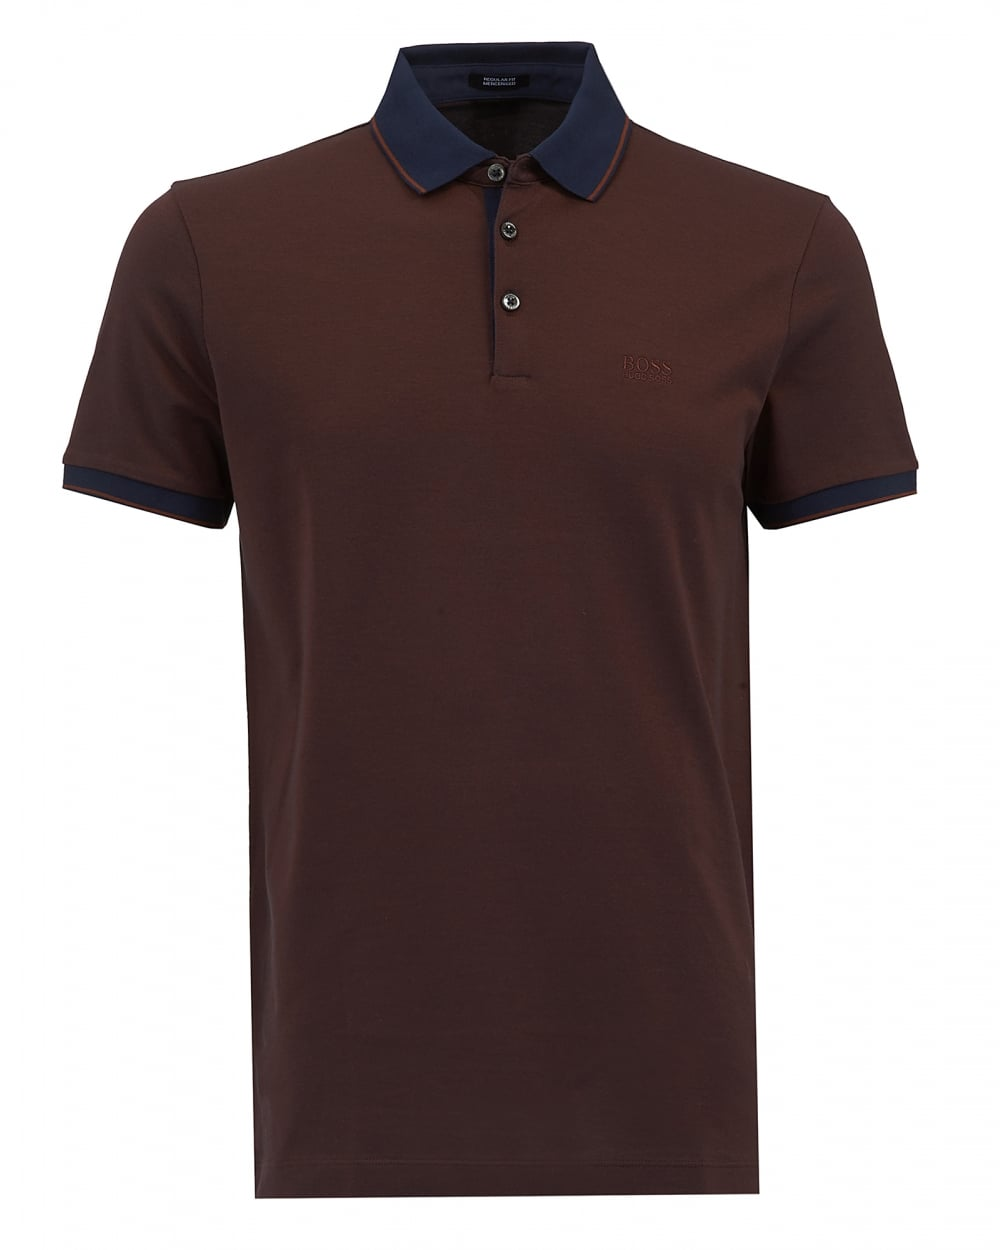 Hugo boss black mens prout 10 polo brown regular fit logo for Men s regular fit shirts